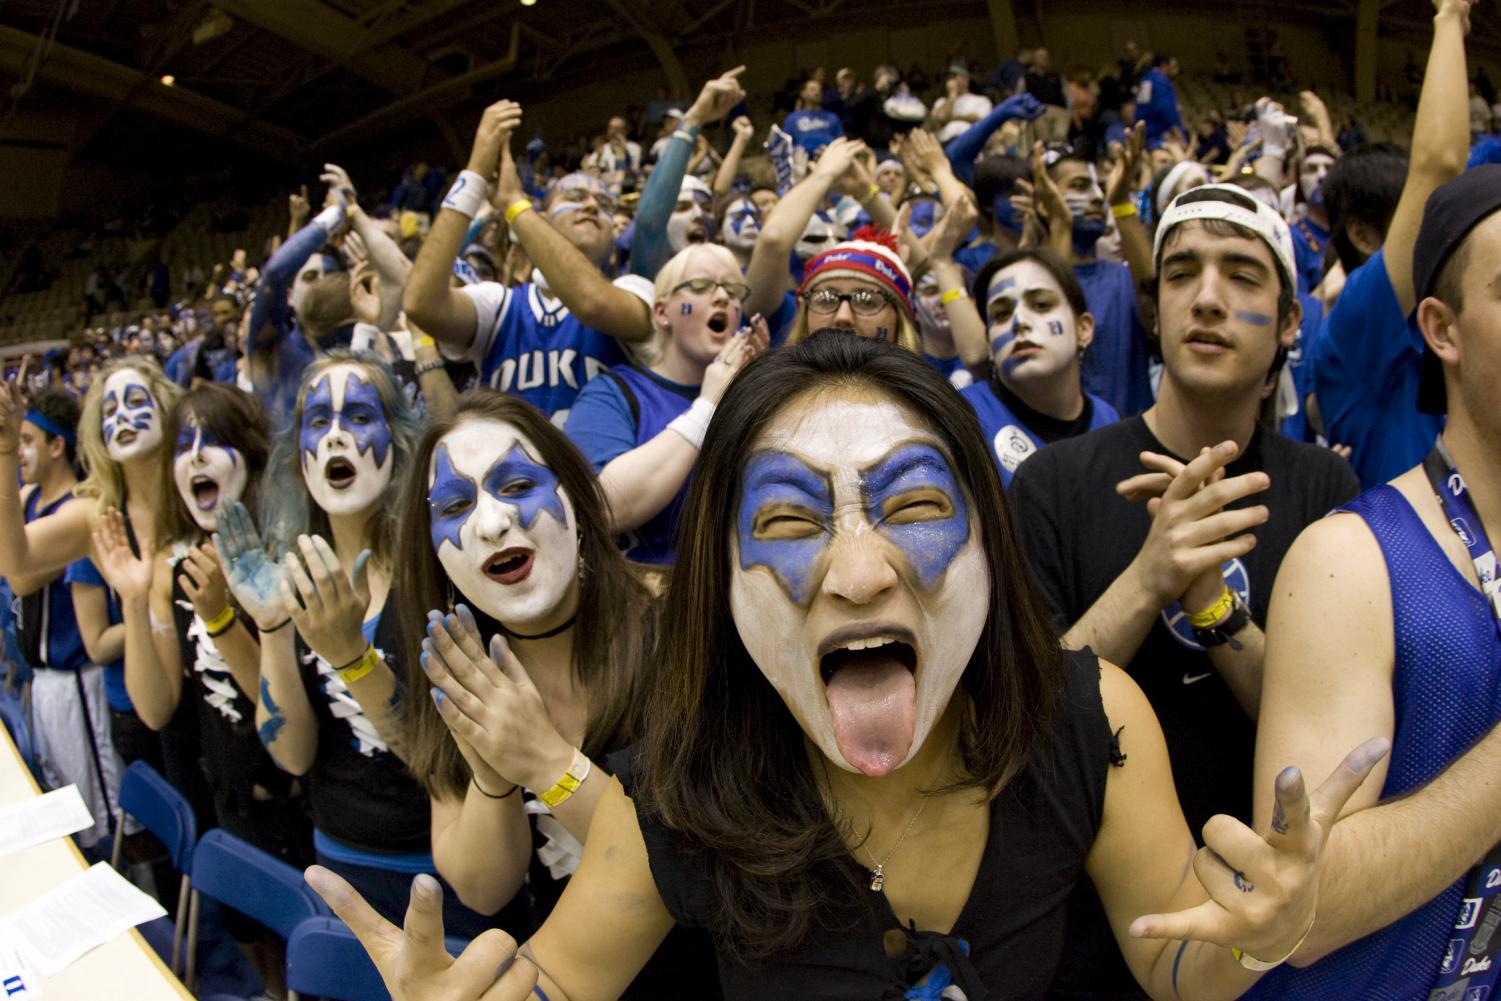 The Blue Devils faithful went nuts when the Dukies battled the Tar Heels on Feb. 14, 2001. Now the two teams will help decide who wins the Shield Final Four Challenge. Photo by Max Masnick, posted to Flickr. Reposted with permission.